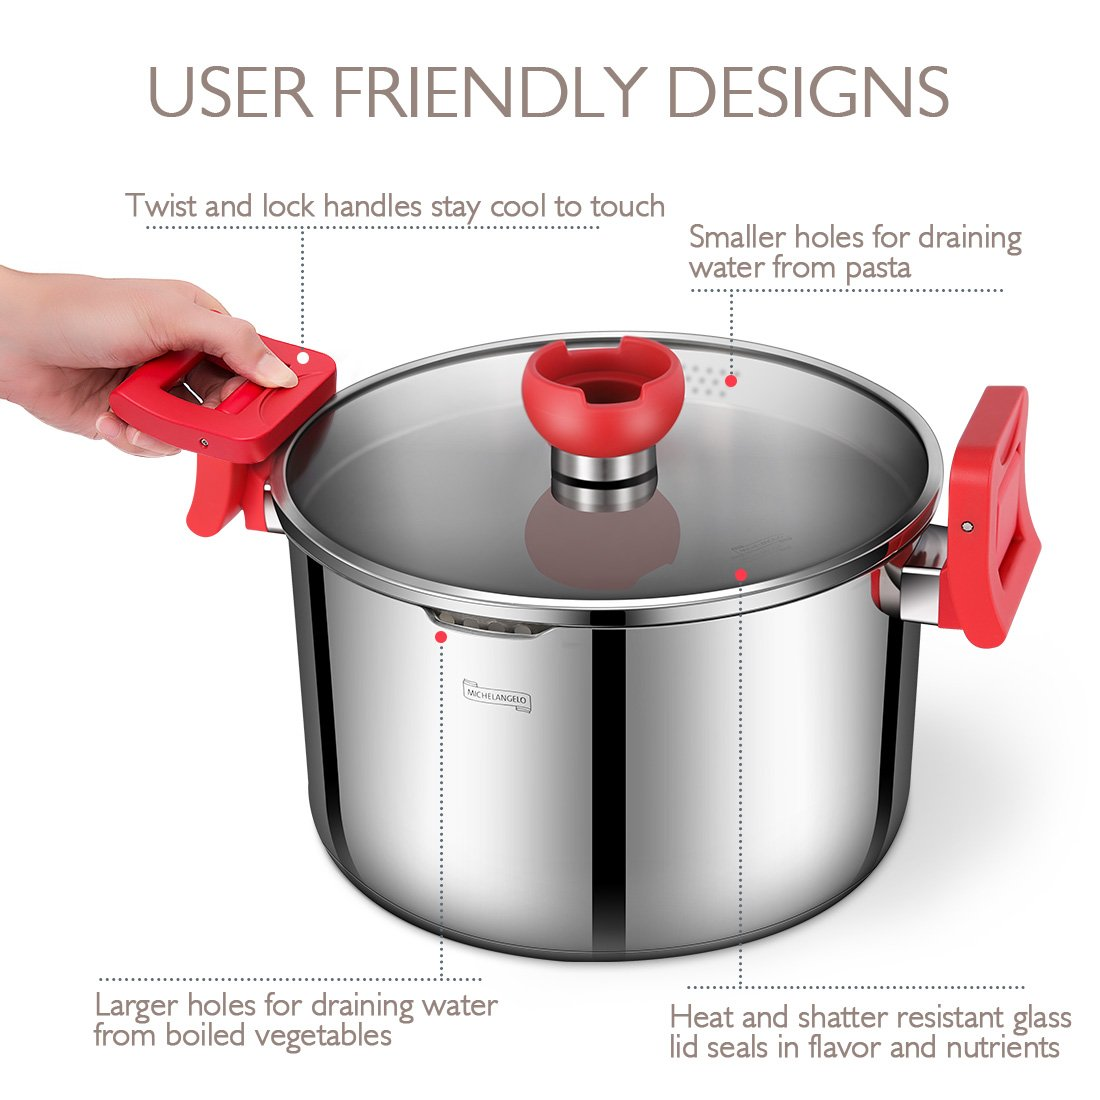 MICHELANGELO 5 Quart Pasta Pot Induction Ready, Stainless Steel Pasta Pot With Strainer Lid, Stainless Steel Dutch Oven Pot, 5 Quart Soup Pots with Lids by MICHELANGELO (Image #6)